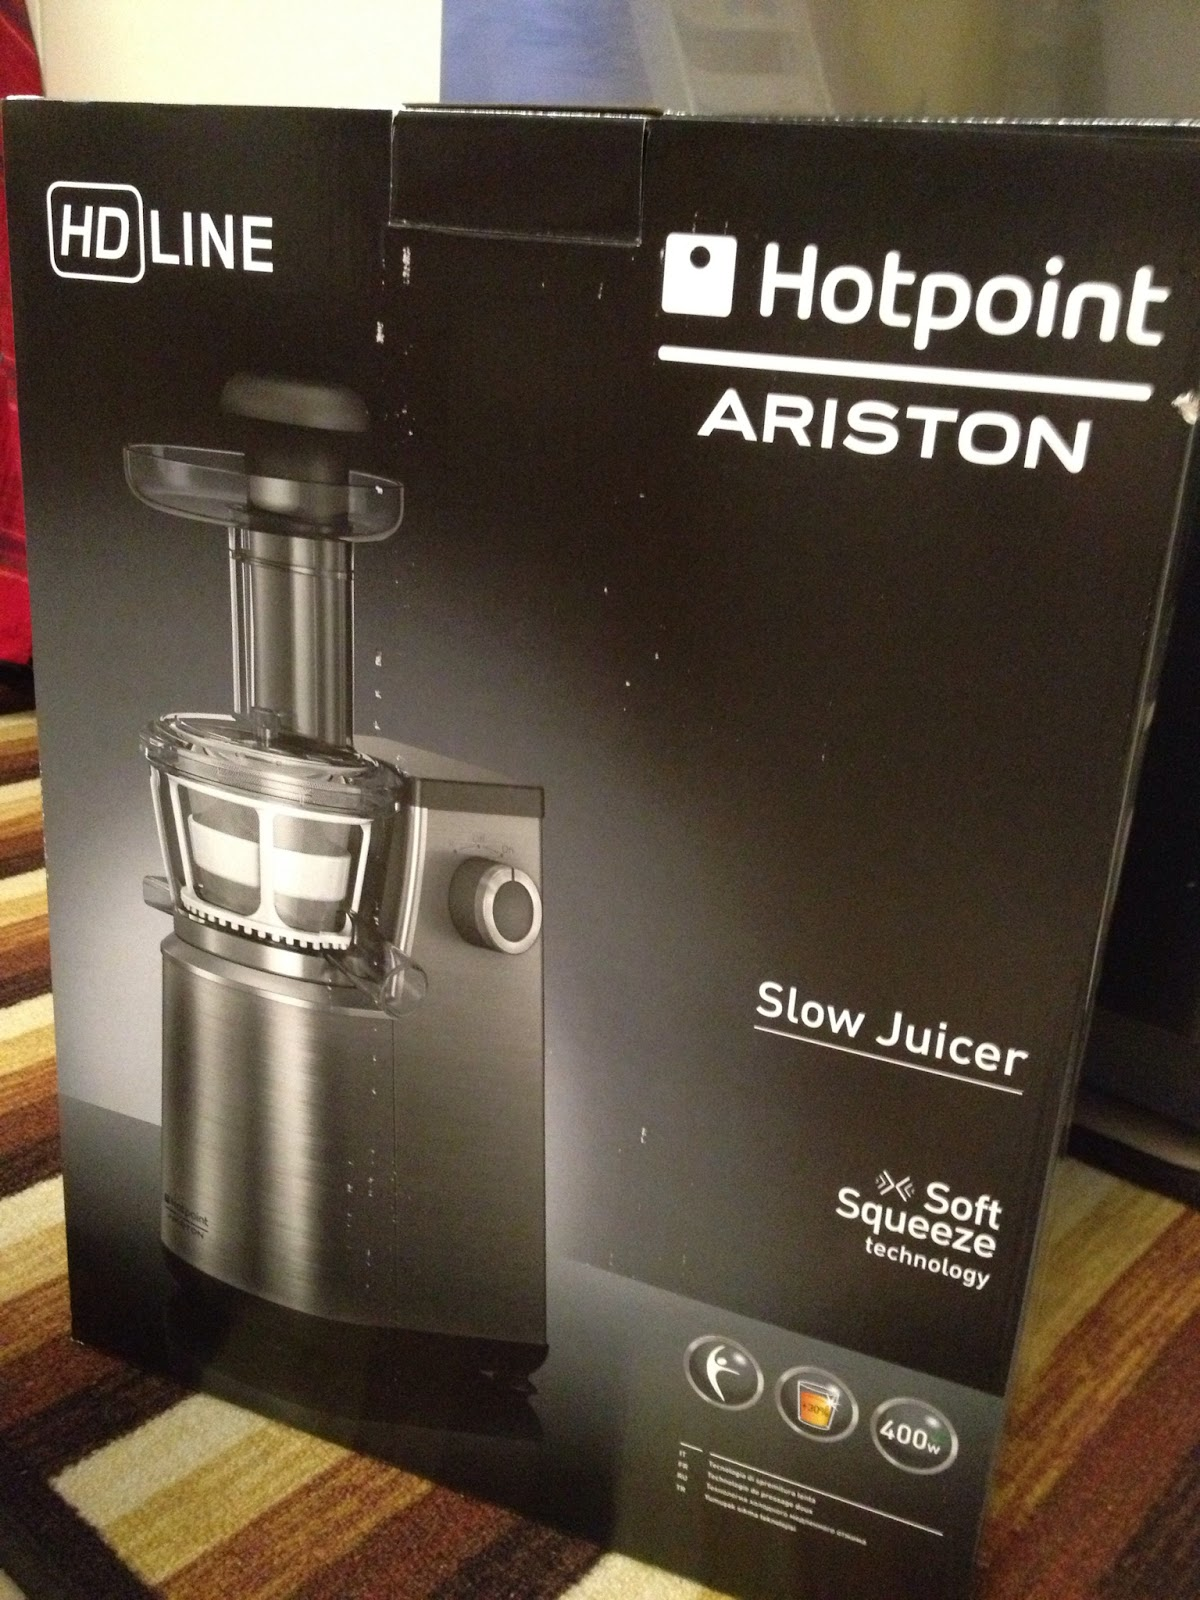 ???????: ????Hotpoint ariston Slow juicer